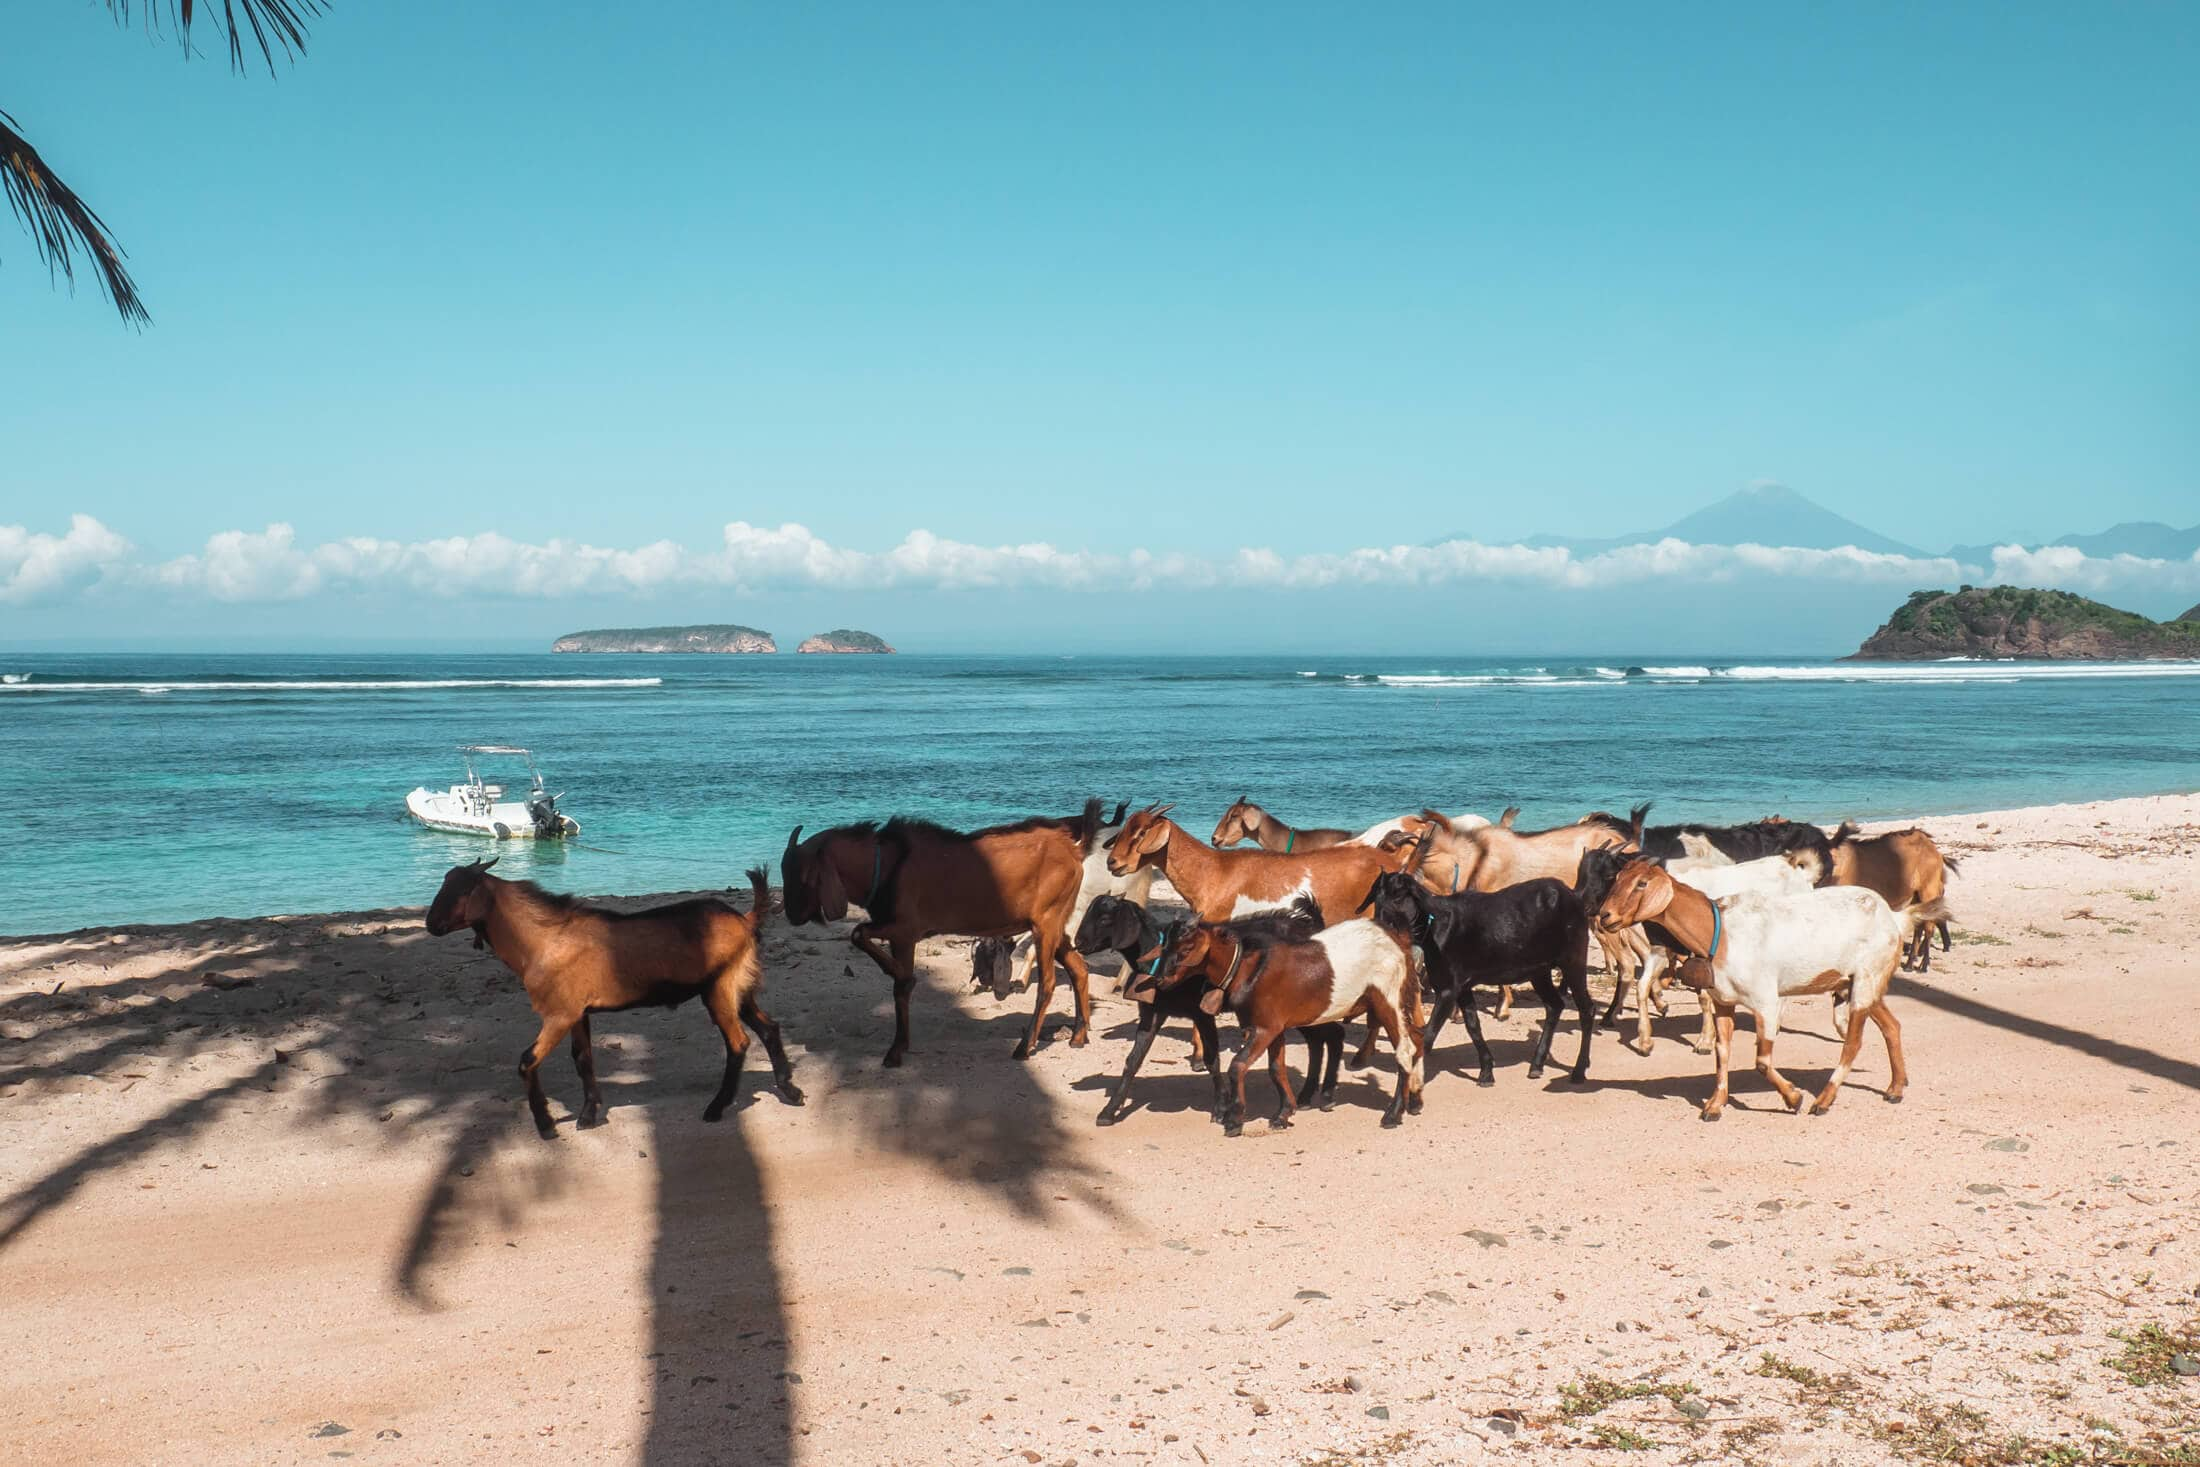 Goats on Kertasari Beach, Whales & Waves Resort in Sumbawa, Indonesia - The most amazing place I've ever been